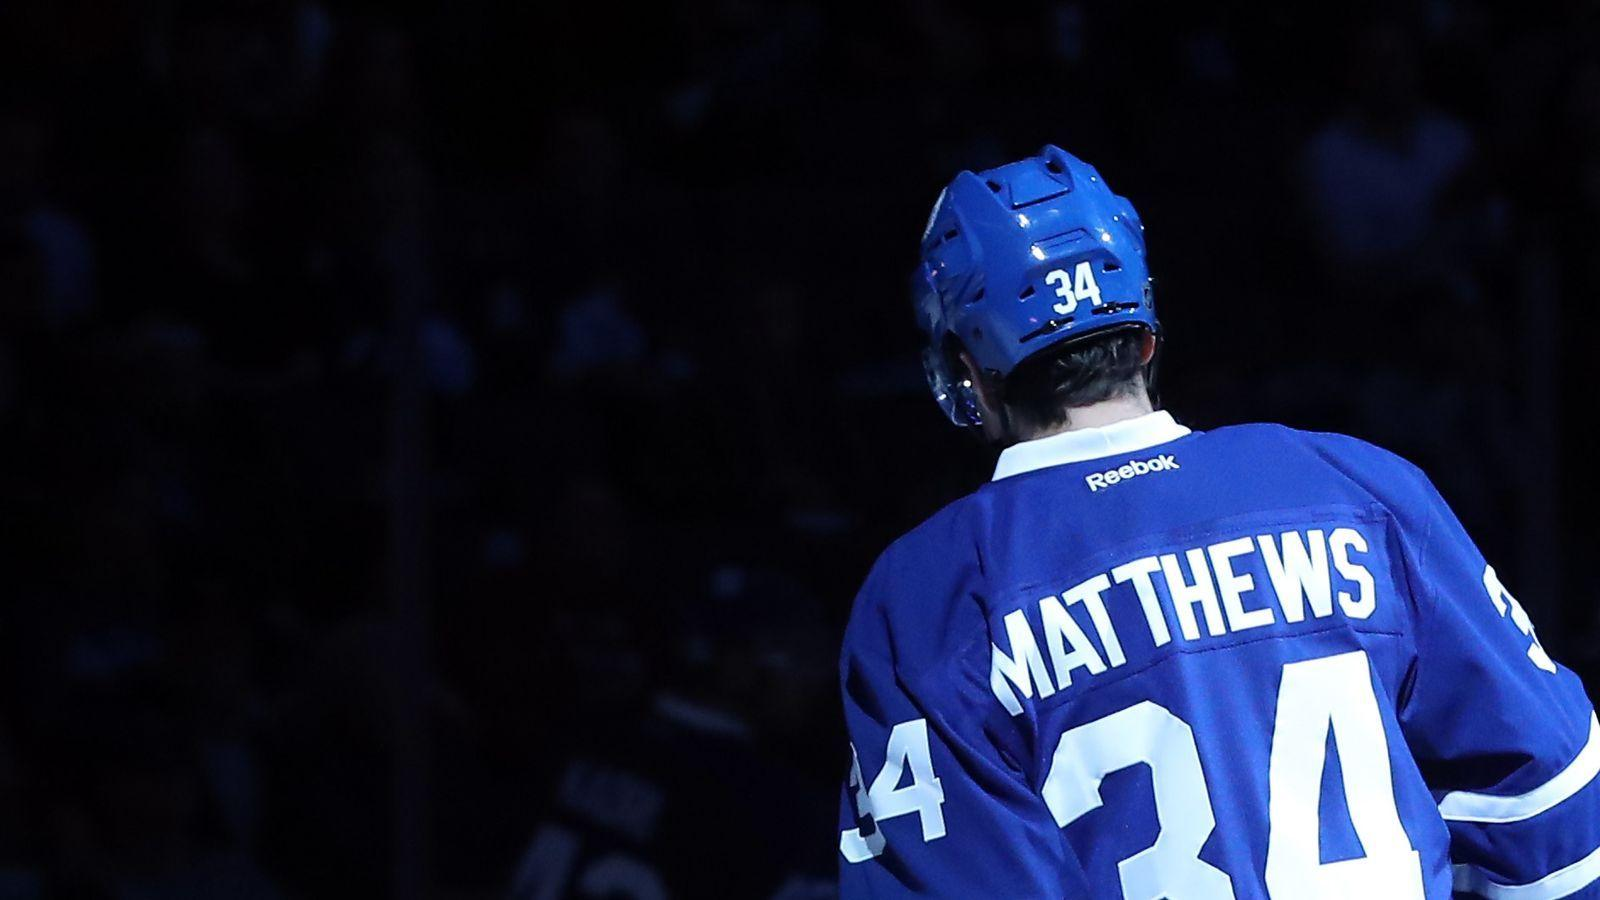 Auston Matthews was so good in Game 1 of the season he got the B's